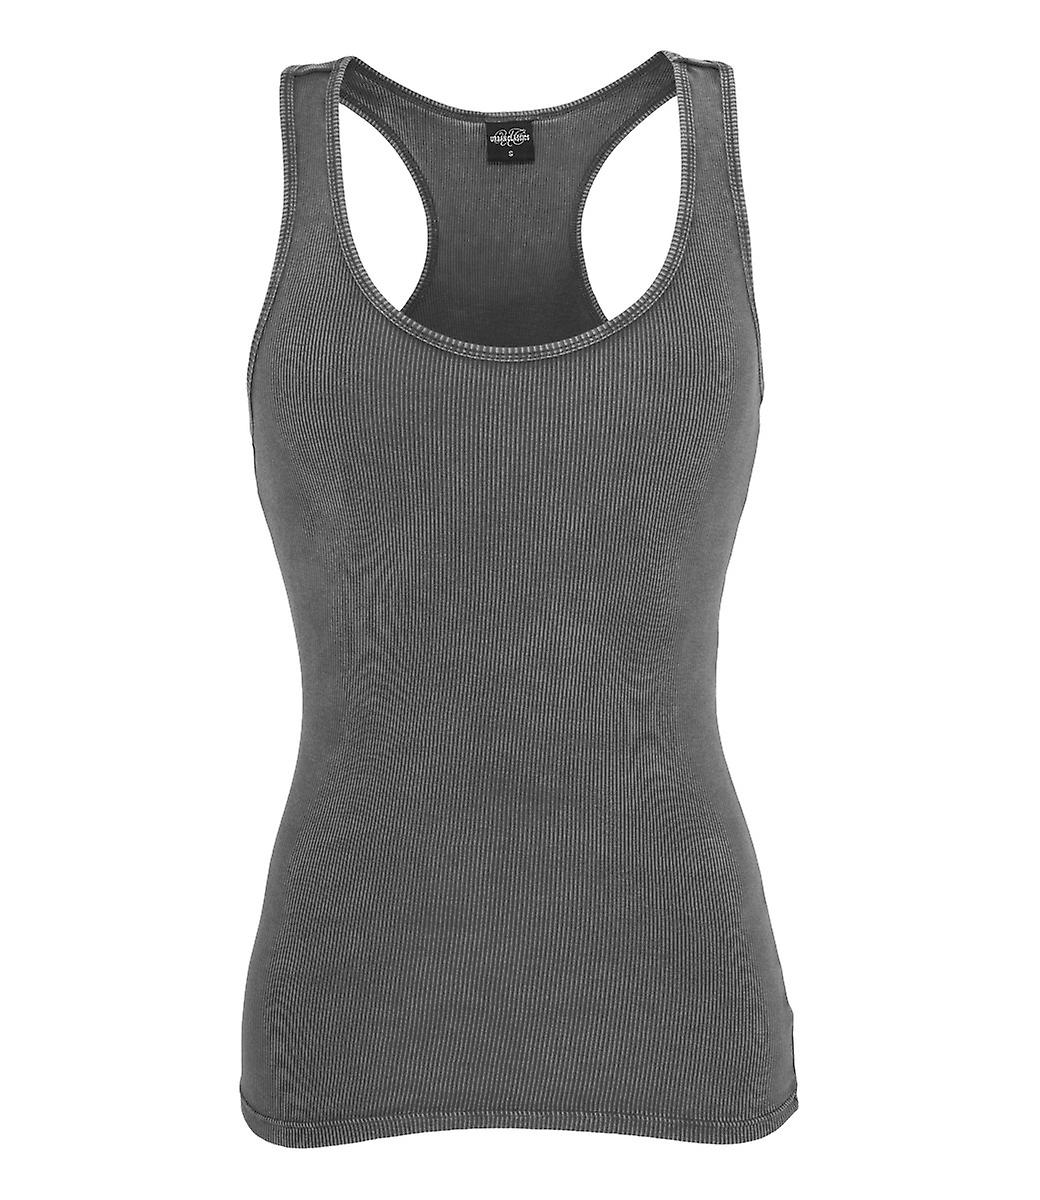 Urban classics ladies faded tank top